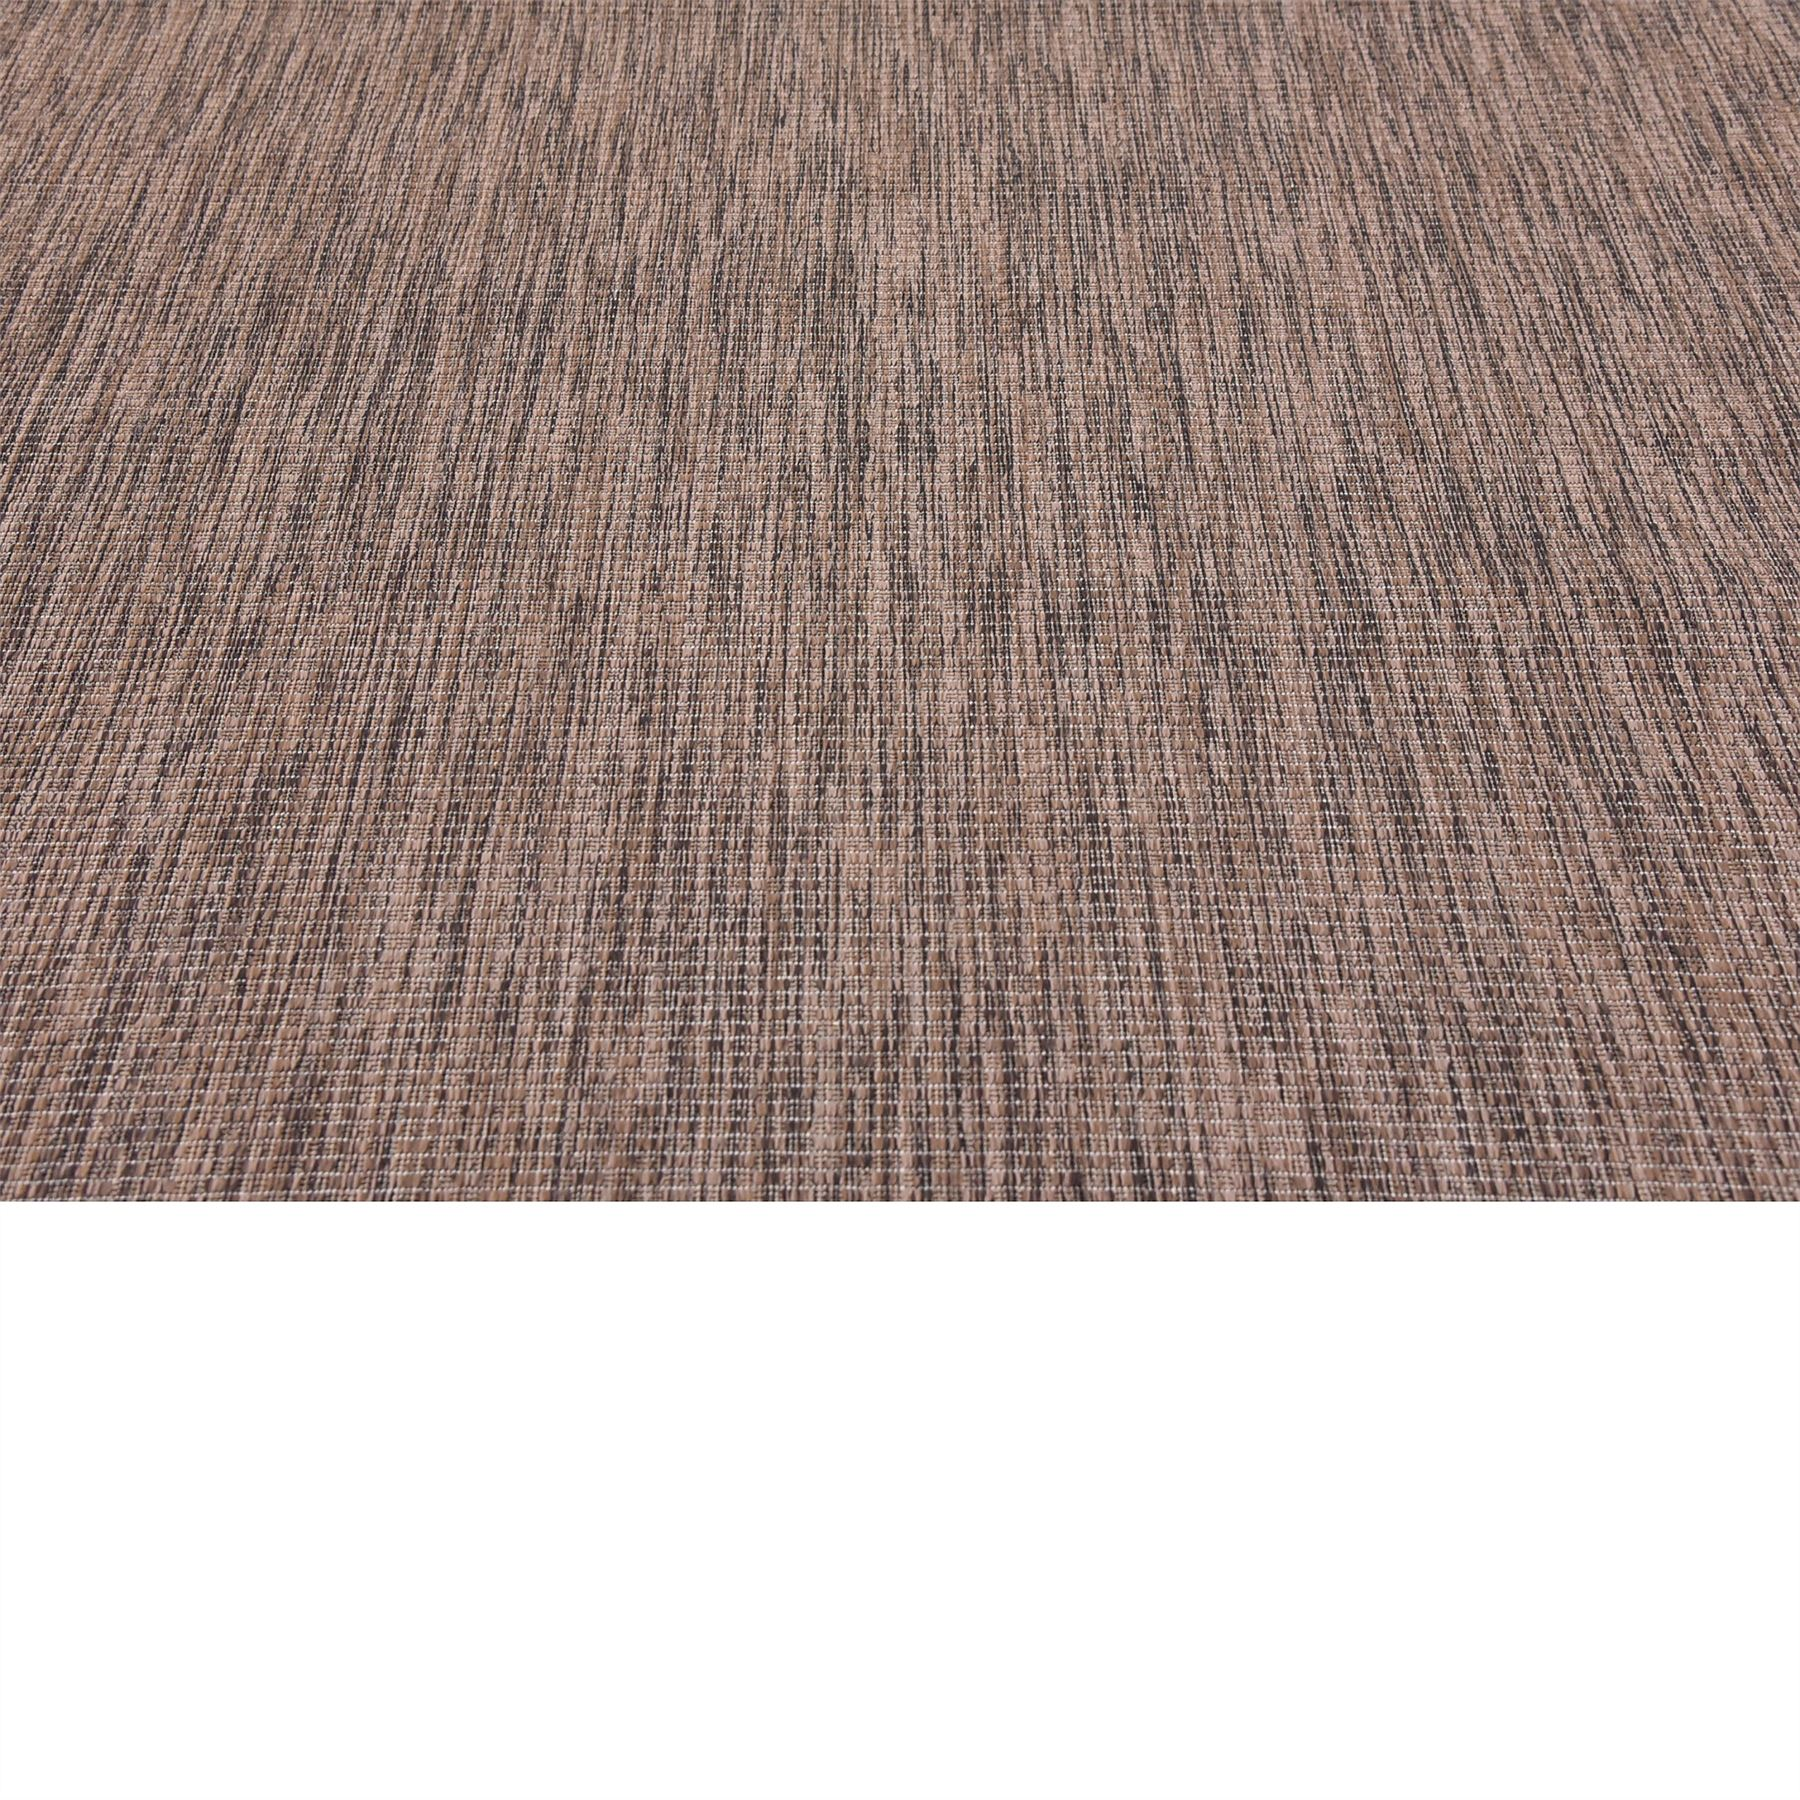 Outdoor Solid Rug New Carpets Oriental Rugs Modern Area